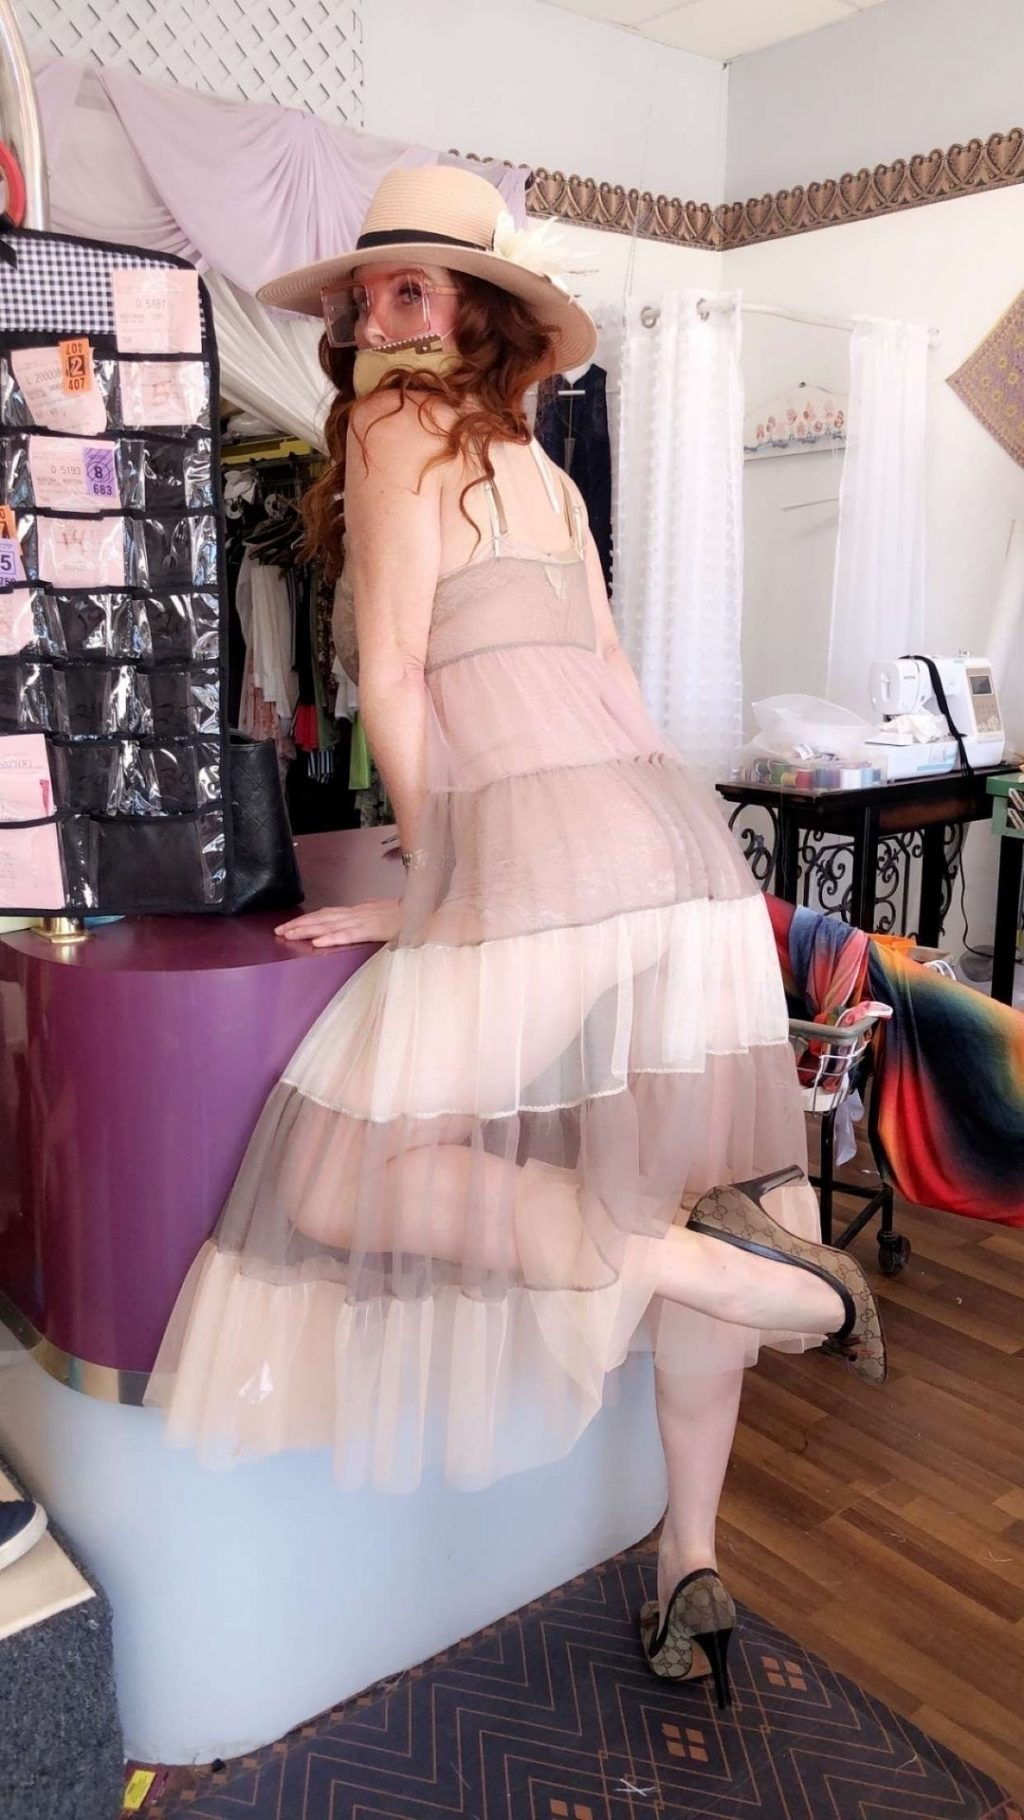 Phoebe Price Poses in a See-Through Dress (19 Photos)